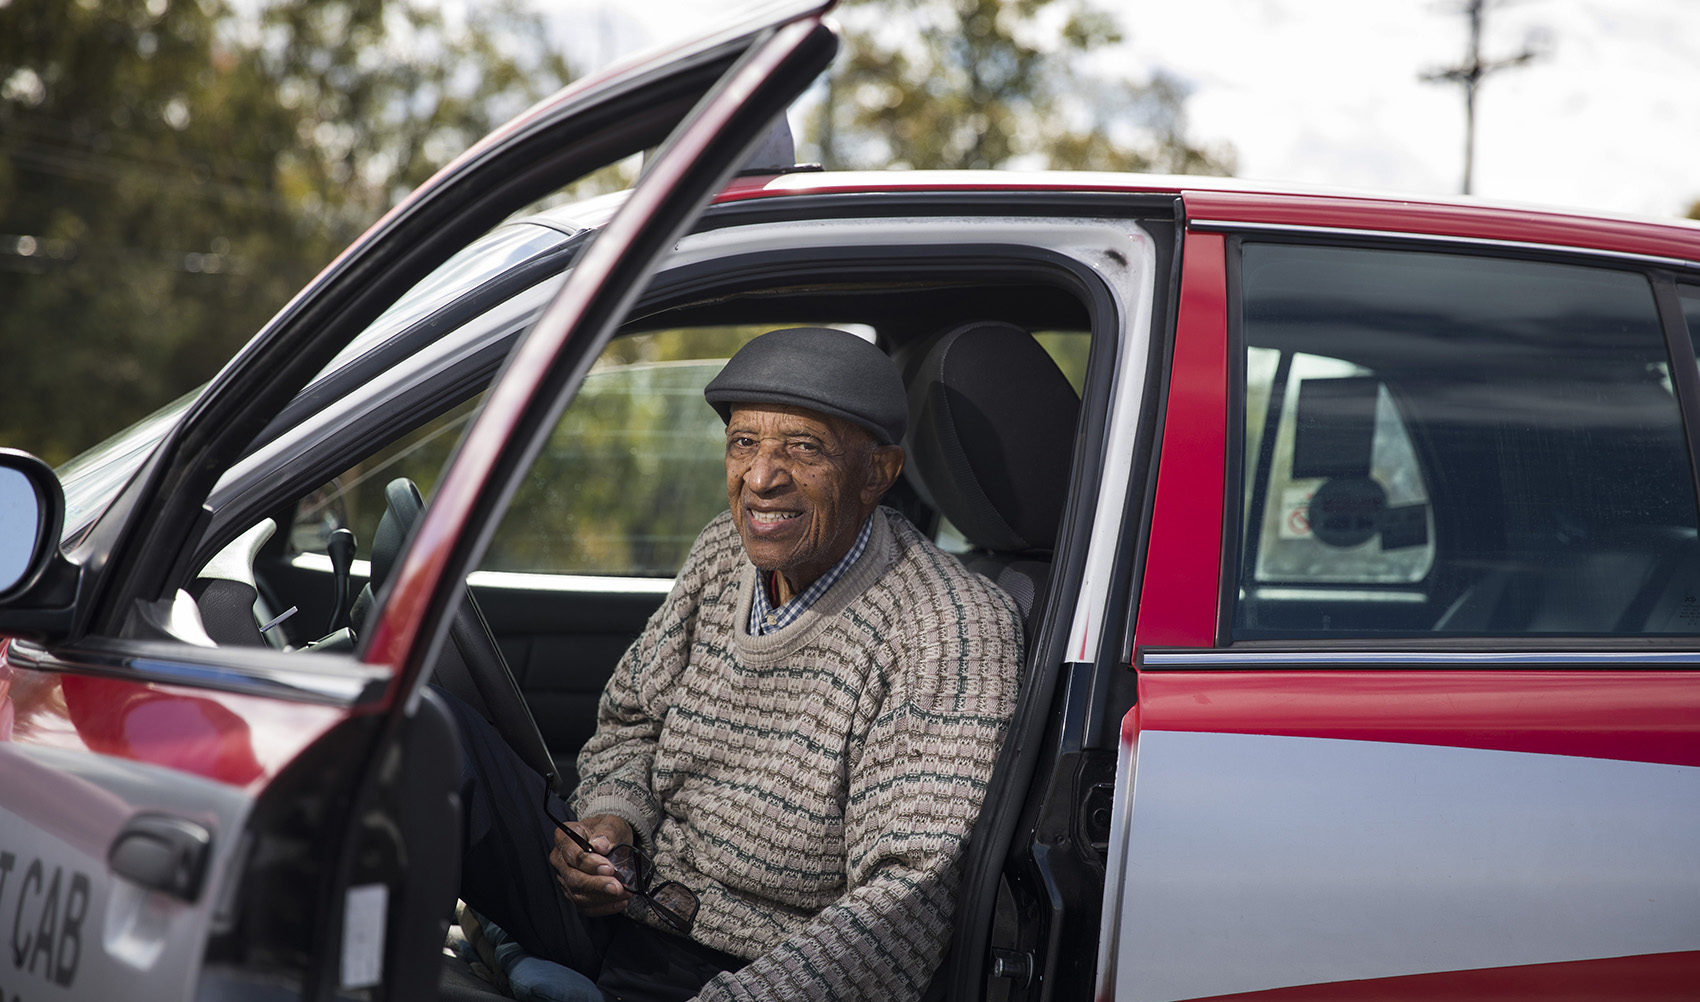 85-year-old man retires after 60-plus years behind the wheel.